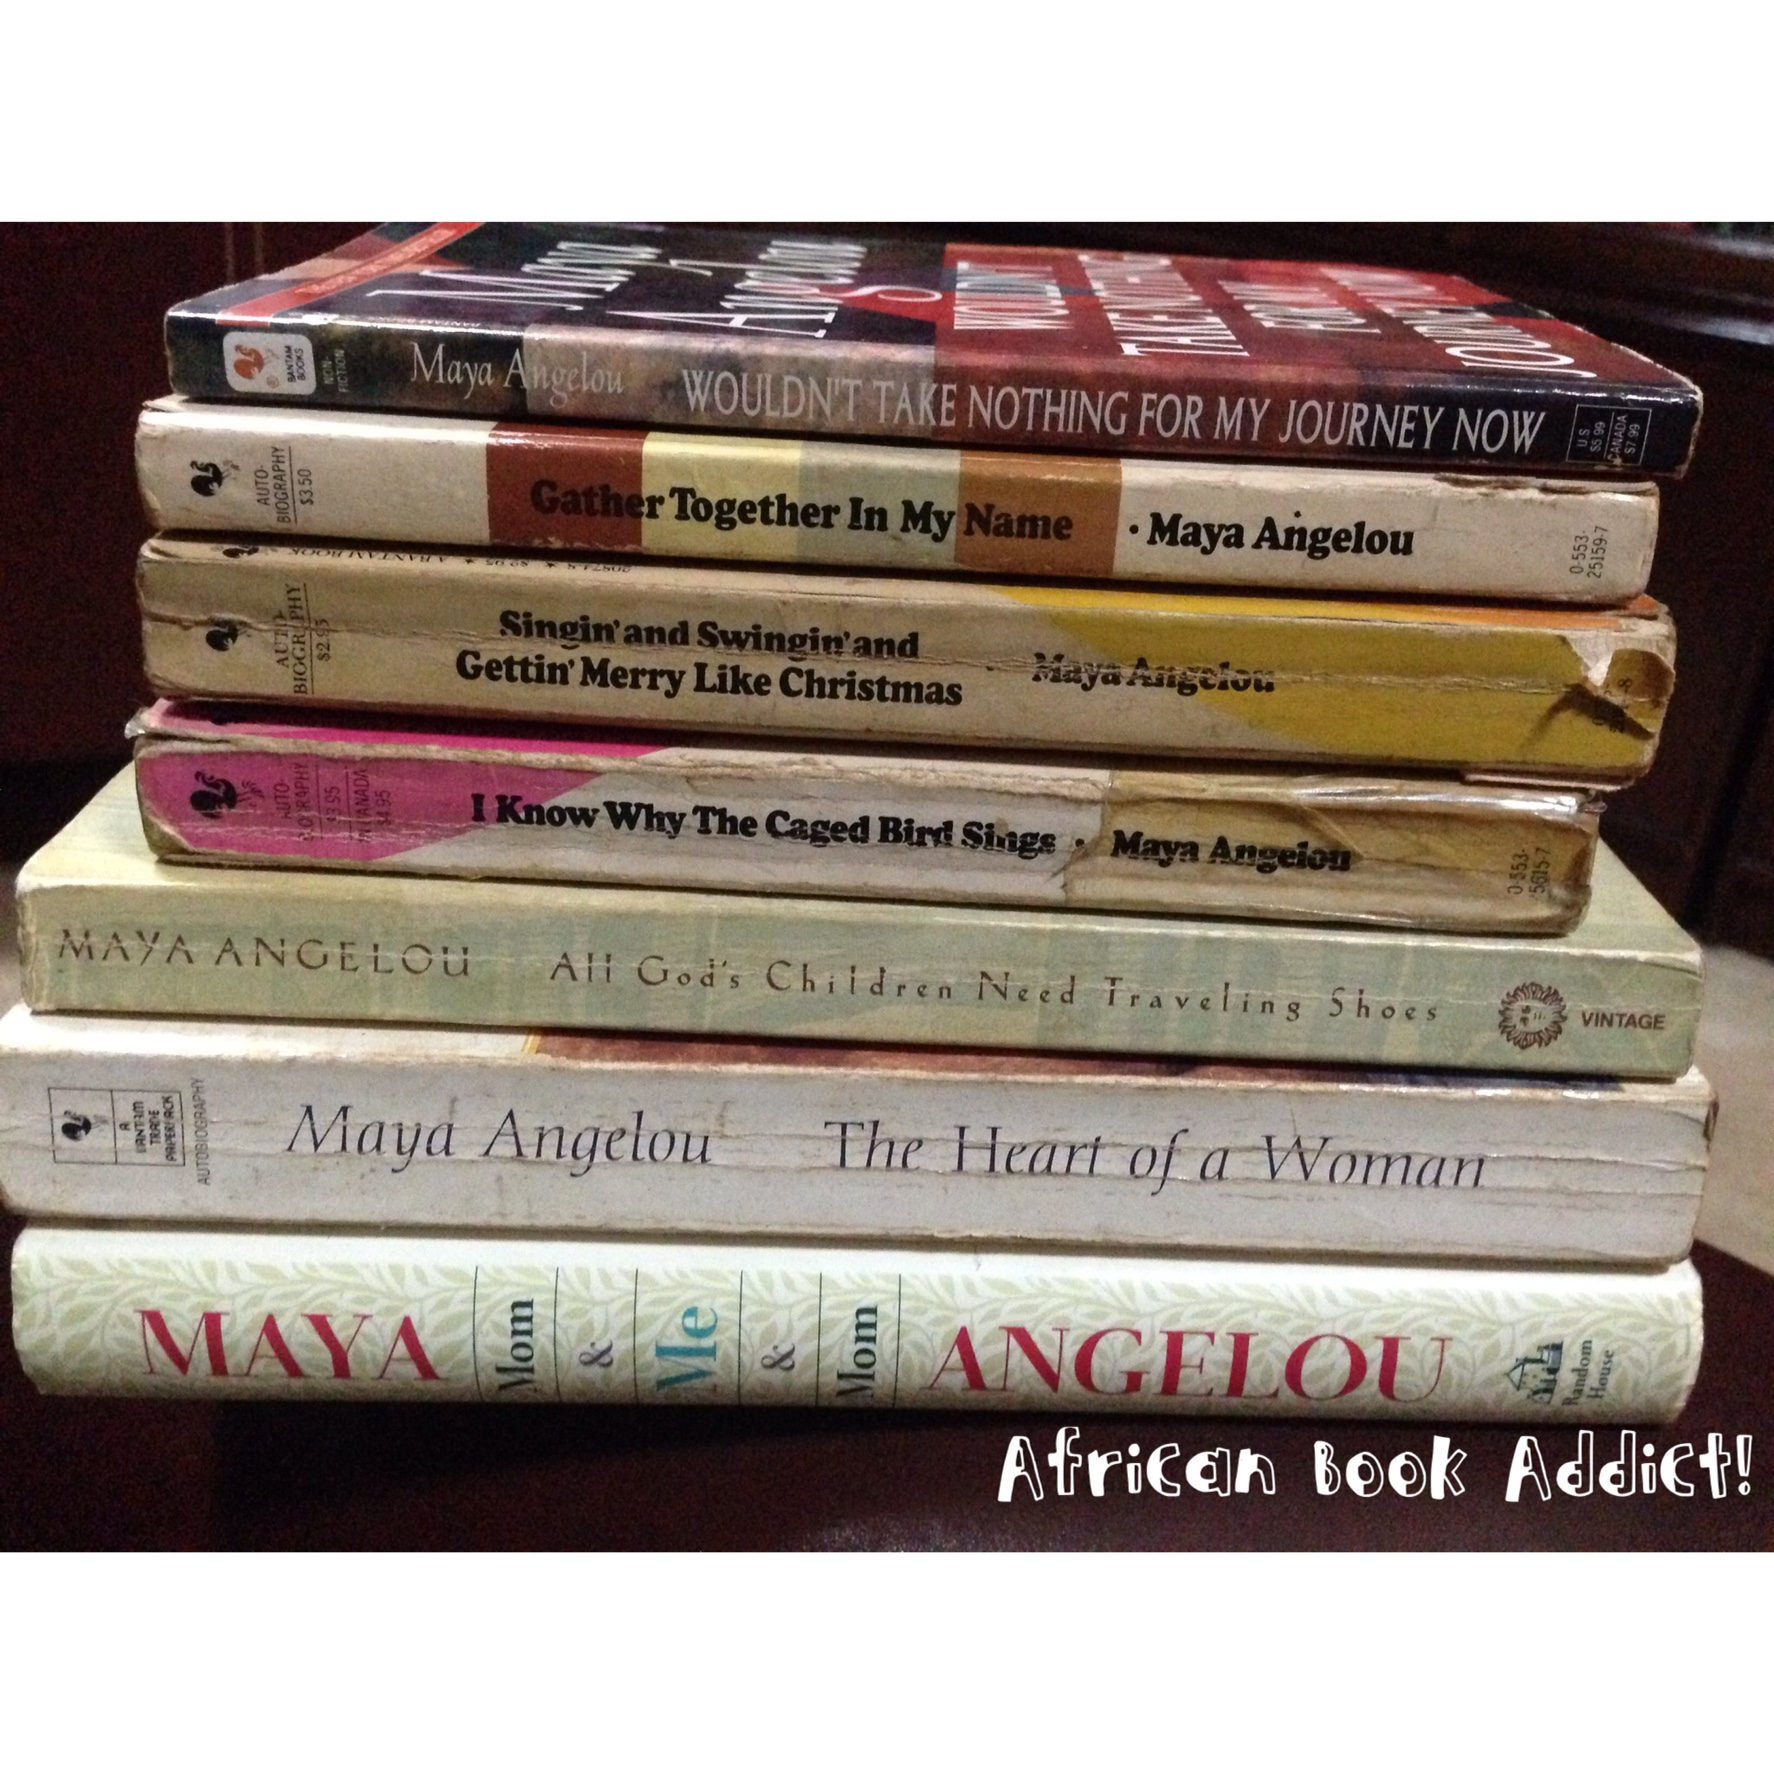 essays on a angelou essay about genetically modified crops and  a angelou african book addict my mother s lovely a angelou collection above these books are